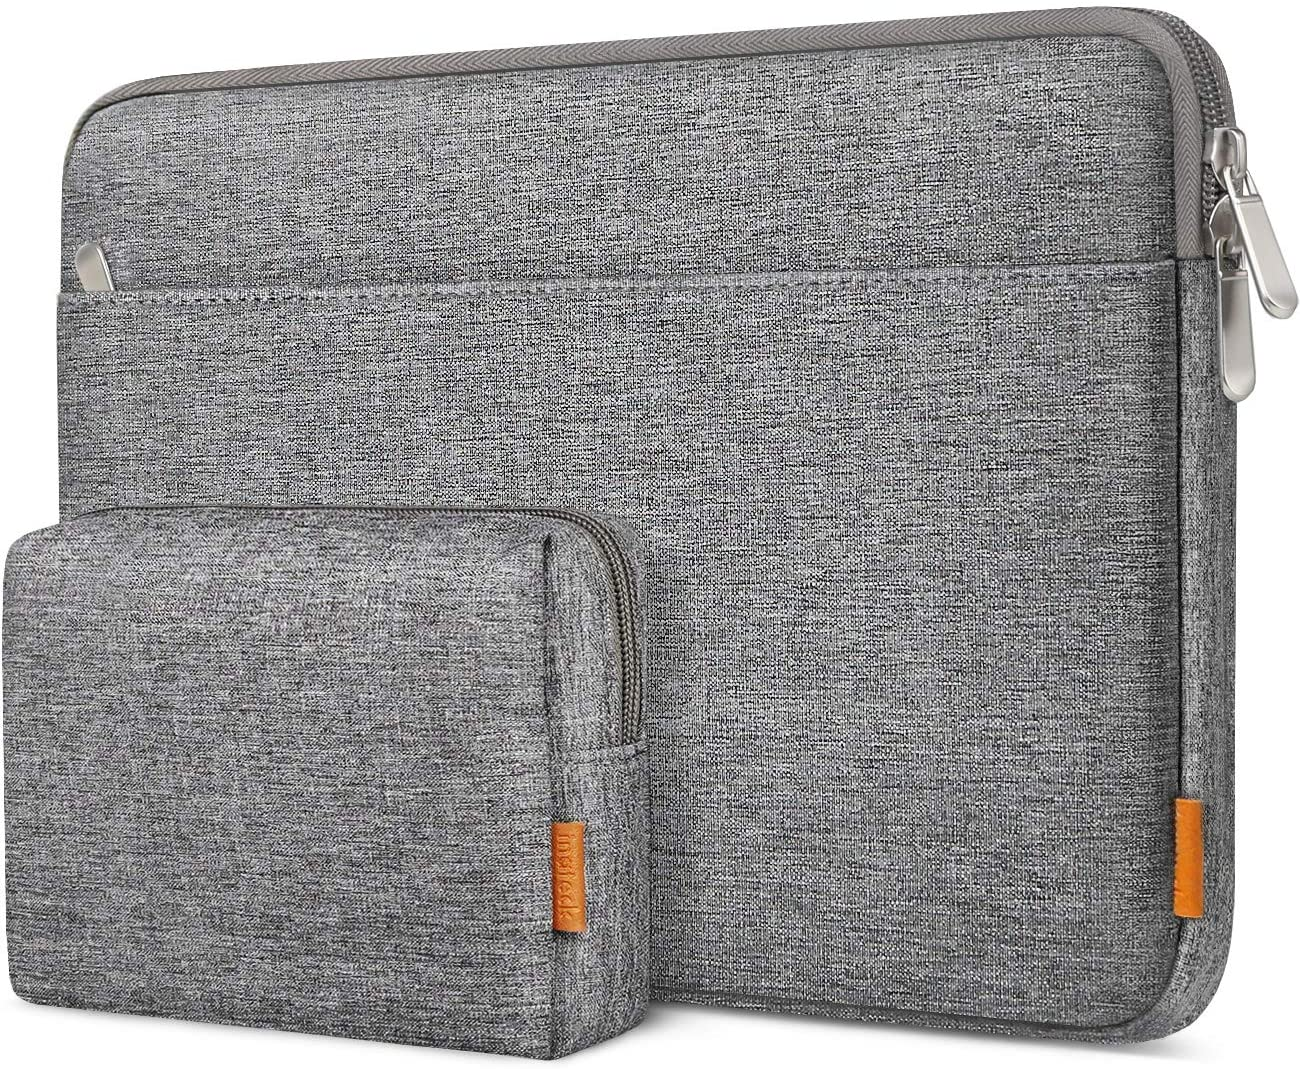 Inateck 13-13.3 Inch Laptop Sleeve with Accessory Pouch LB01005, Gray